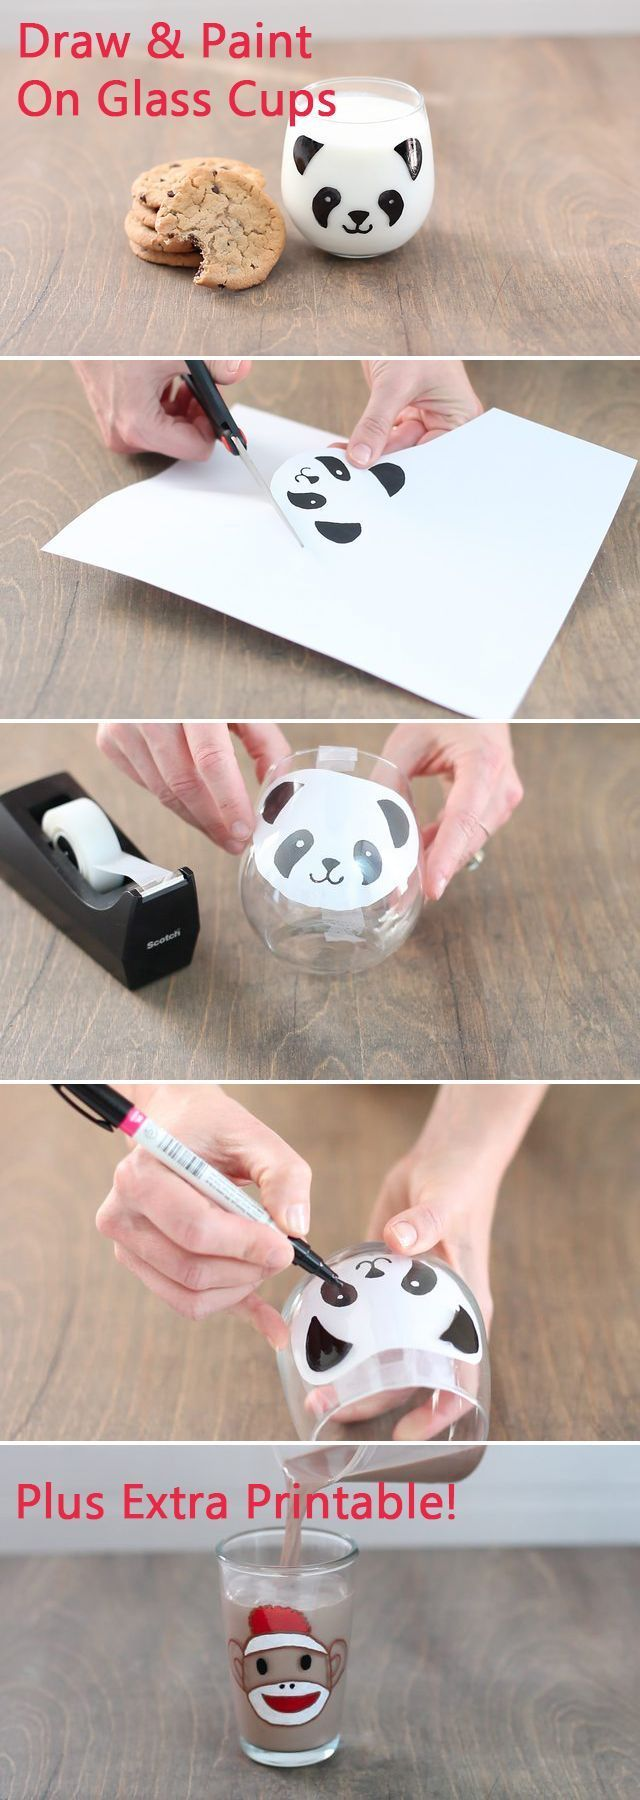 How adorable are these Panda (and sock monkey) glass milk cups! After drawing on the panda with our stencil, the milk fills in the rest! Just in time for Kung Fu Panda,  make these Panda cups at home with the kids and they'll LOVE drinking their milk.  Both printables available for free here: www.ehow.com/...